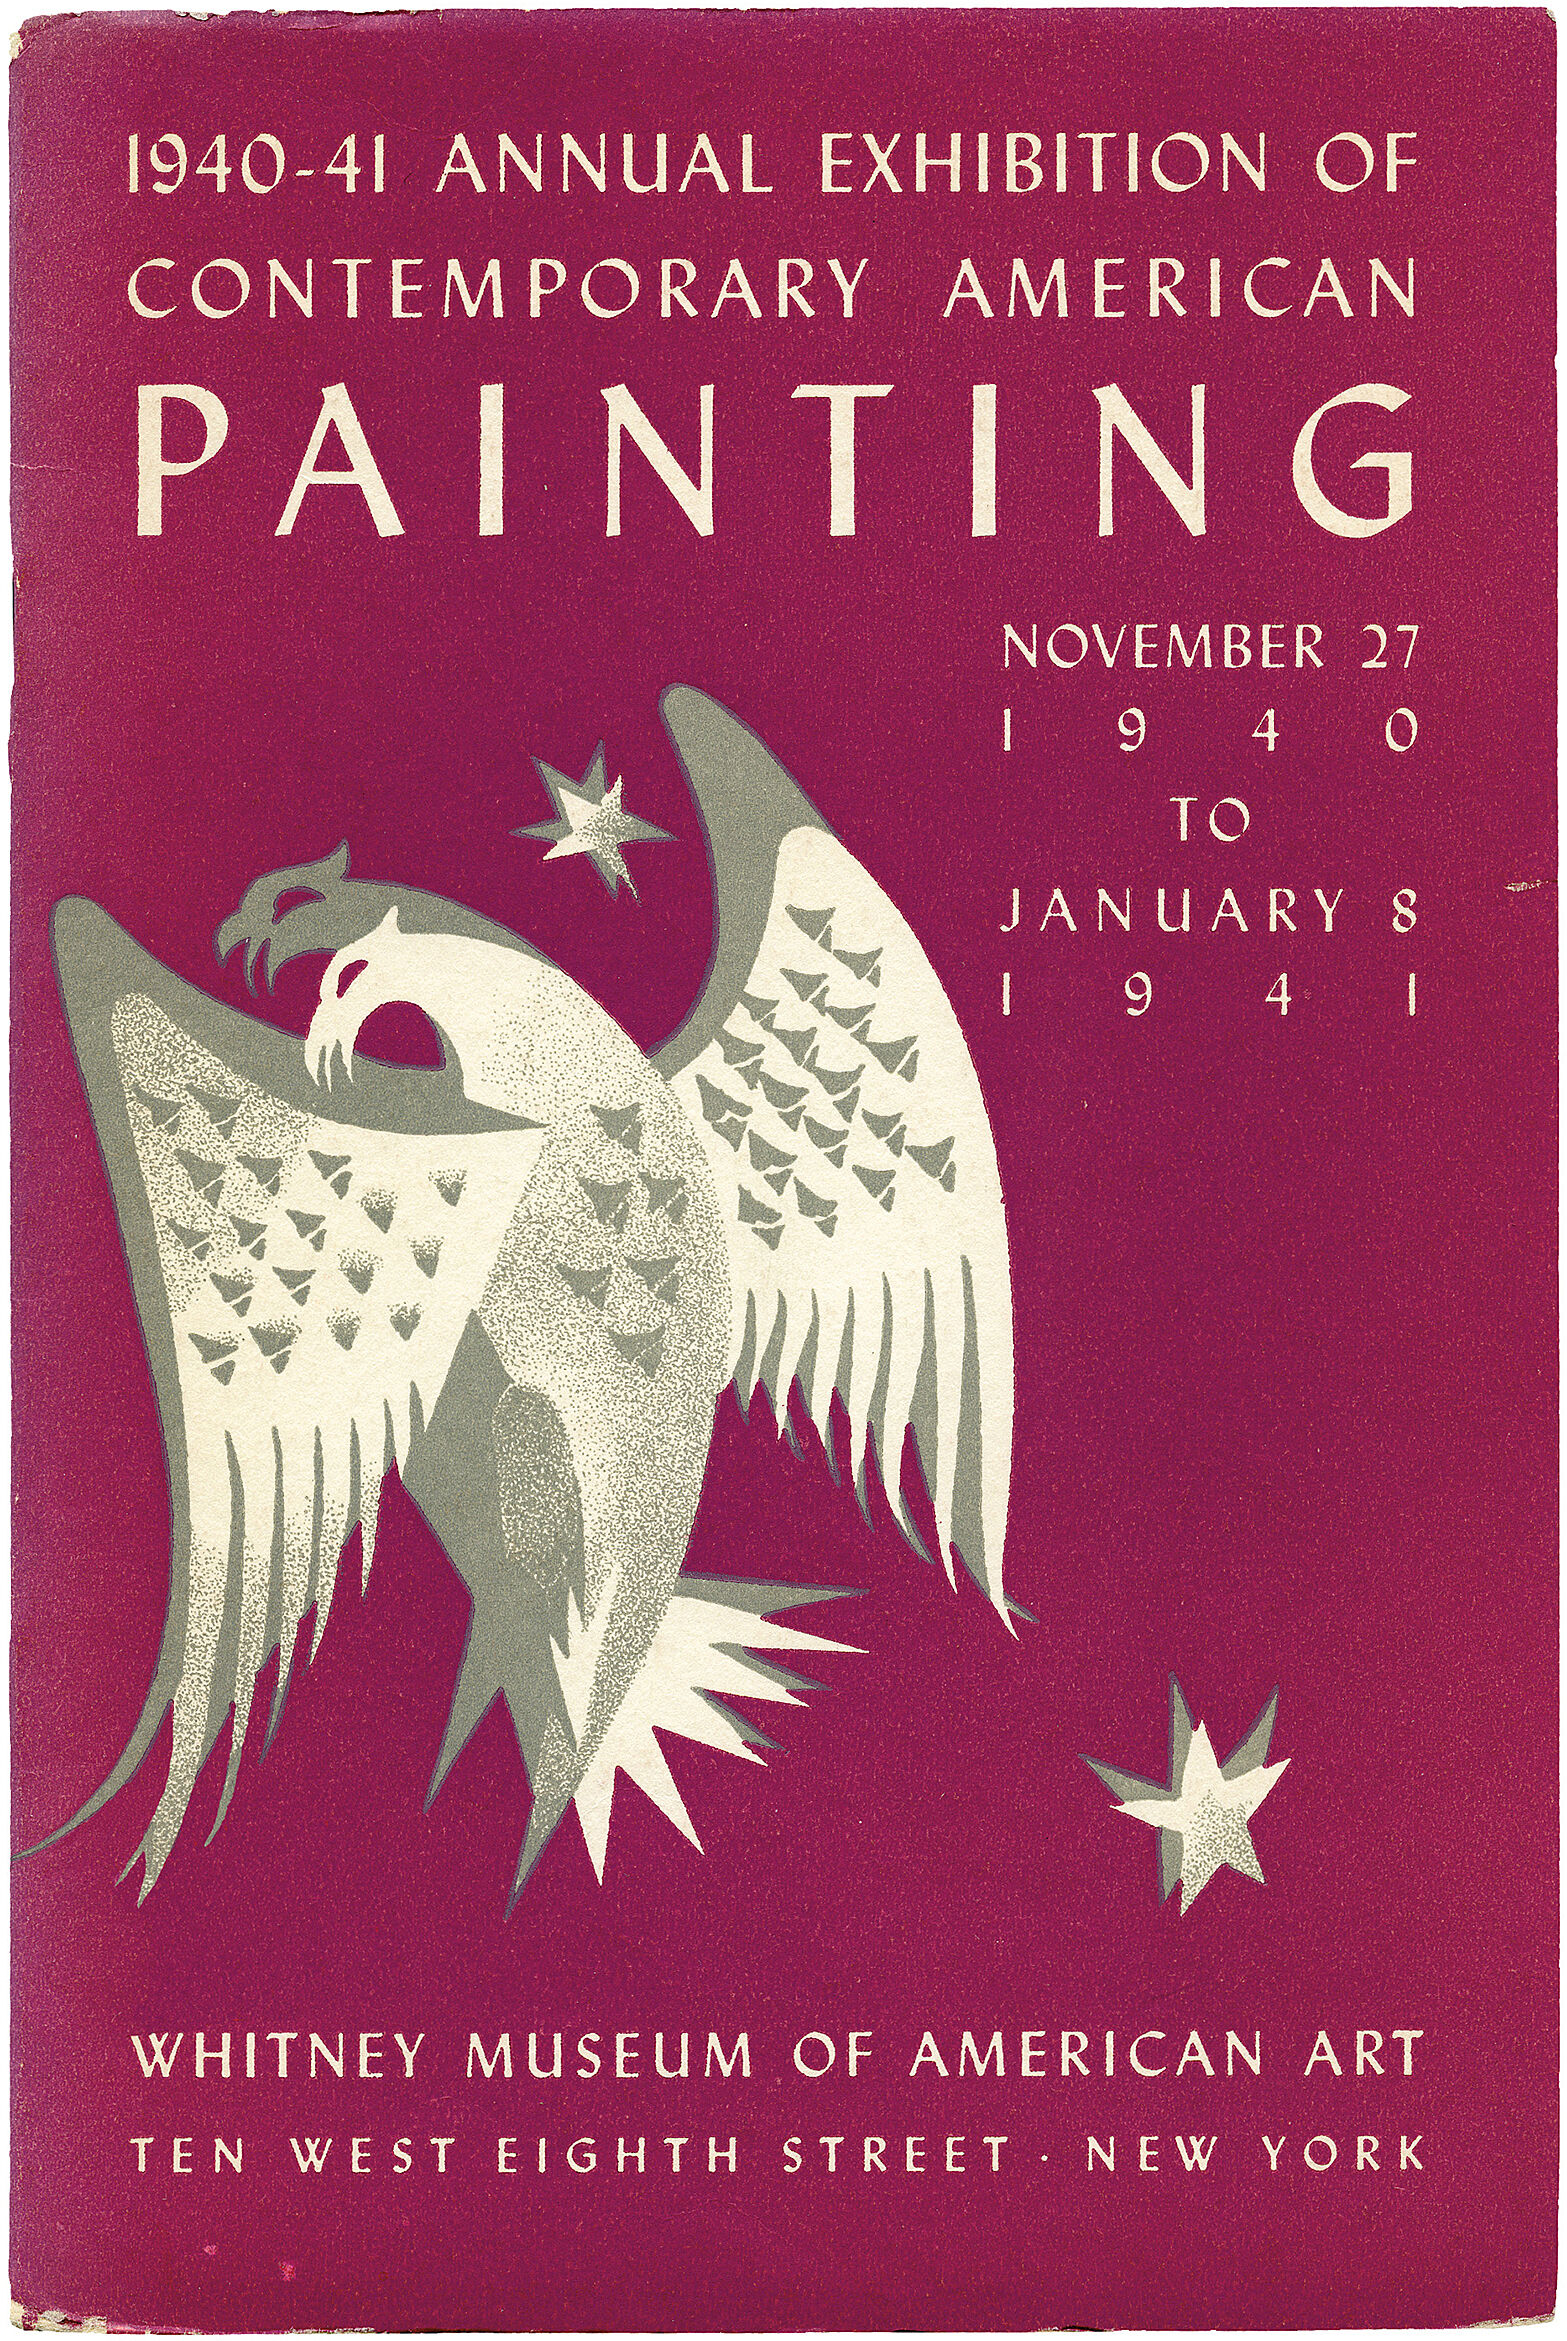 Cover for 1940 Annual Exhibition of Contemporary American Painting catalogue